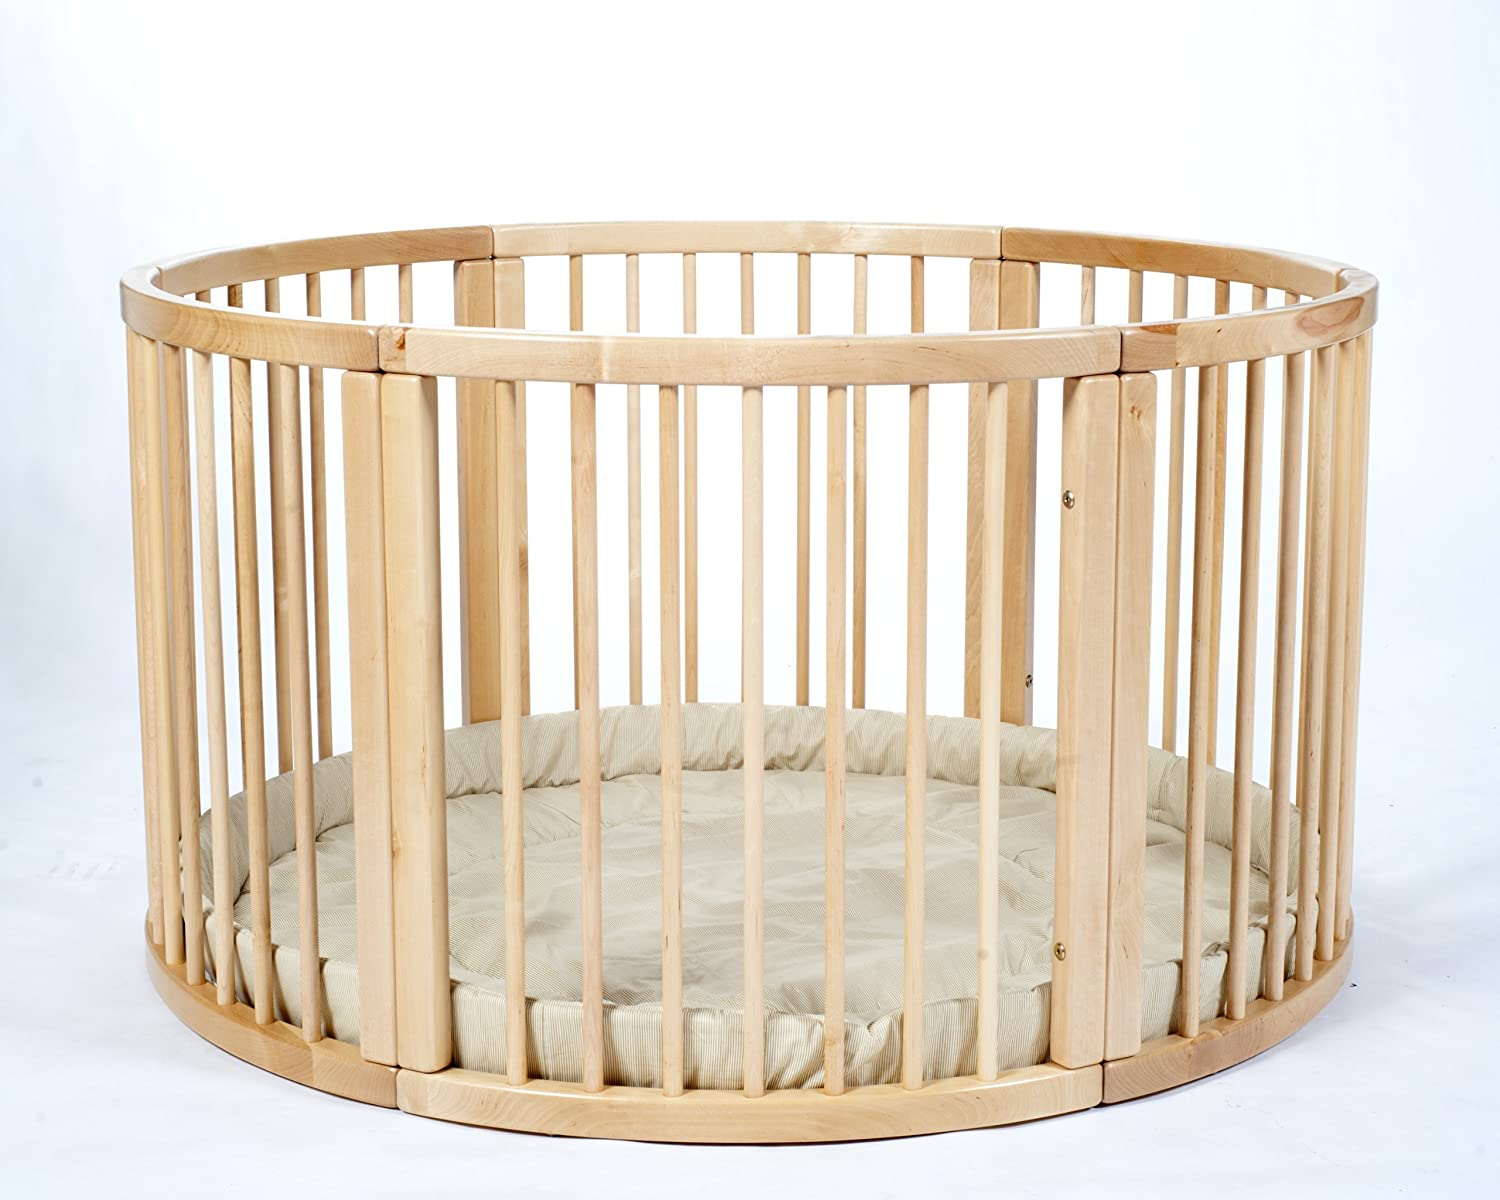 Brand NEW VERY LARGE Wooden PLAYPEN ATLAS UNO from MJmark SALE SALE